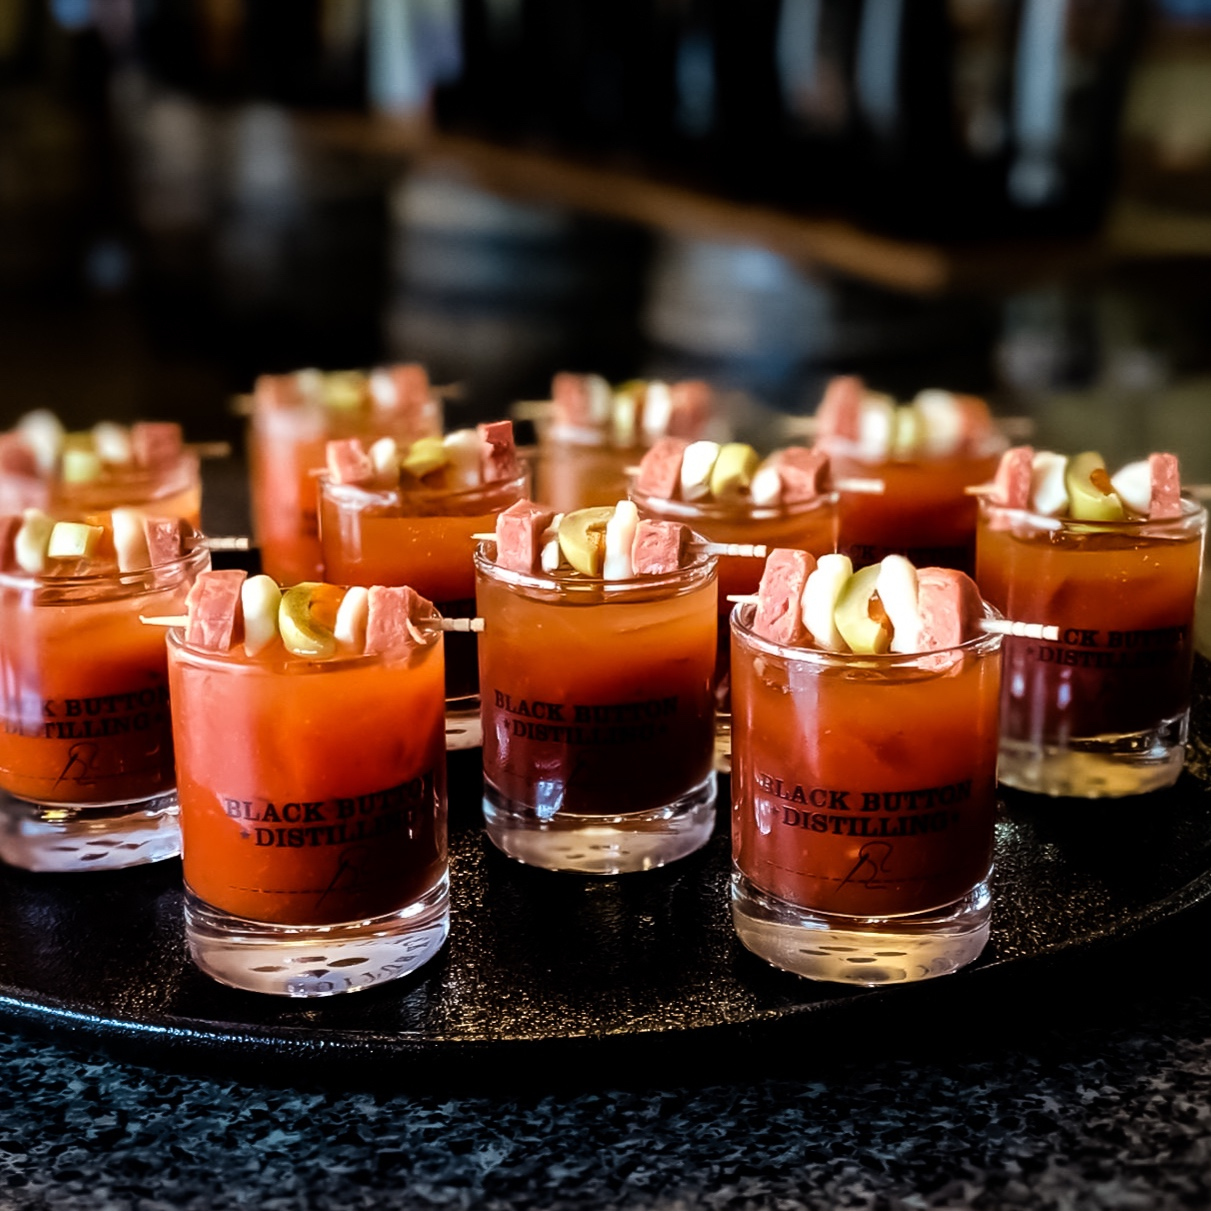 Several Small Bloody Mary cocktails on a tray